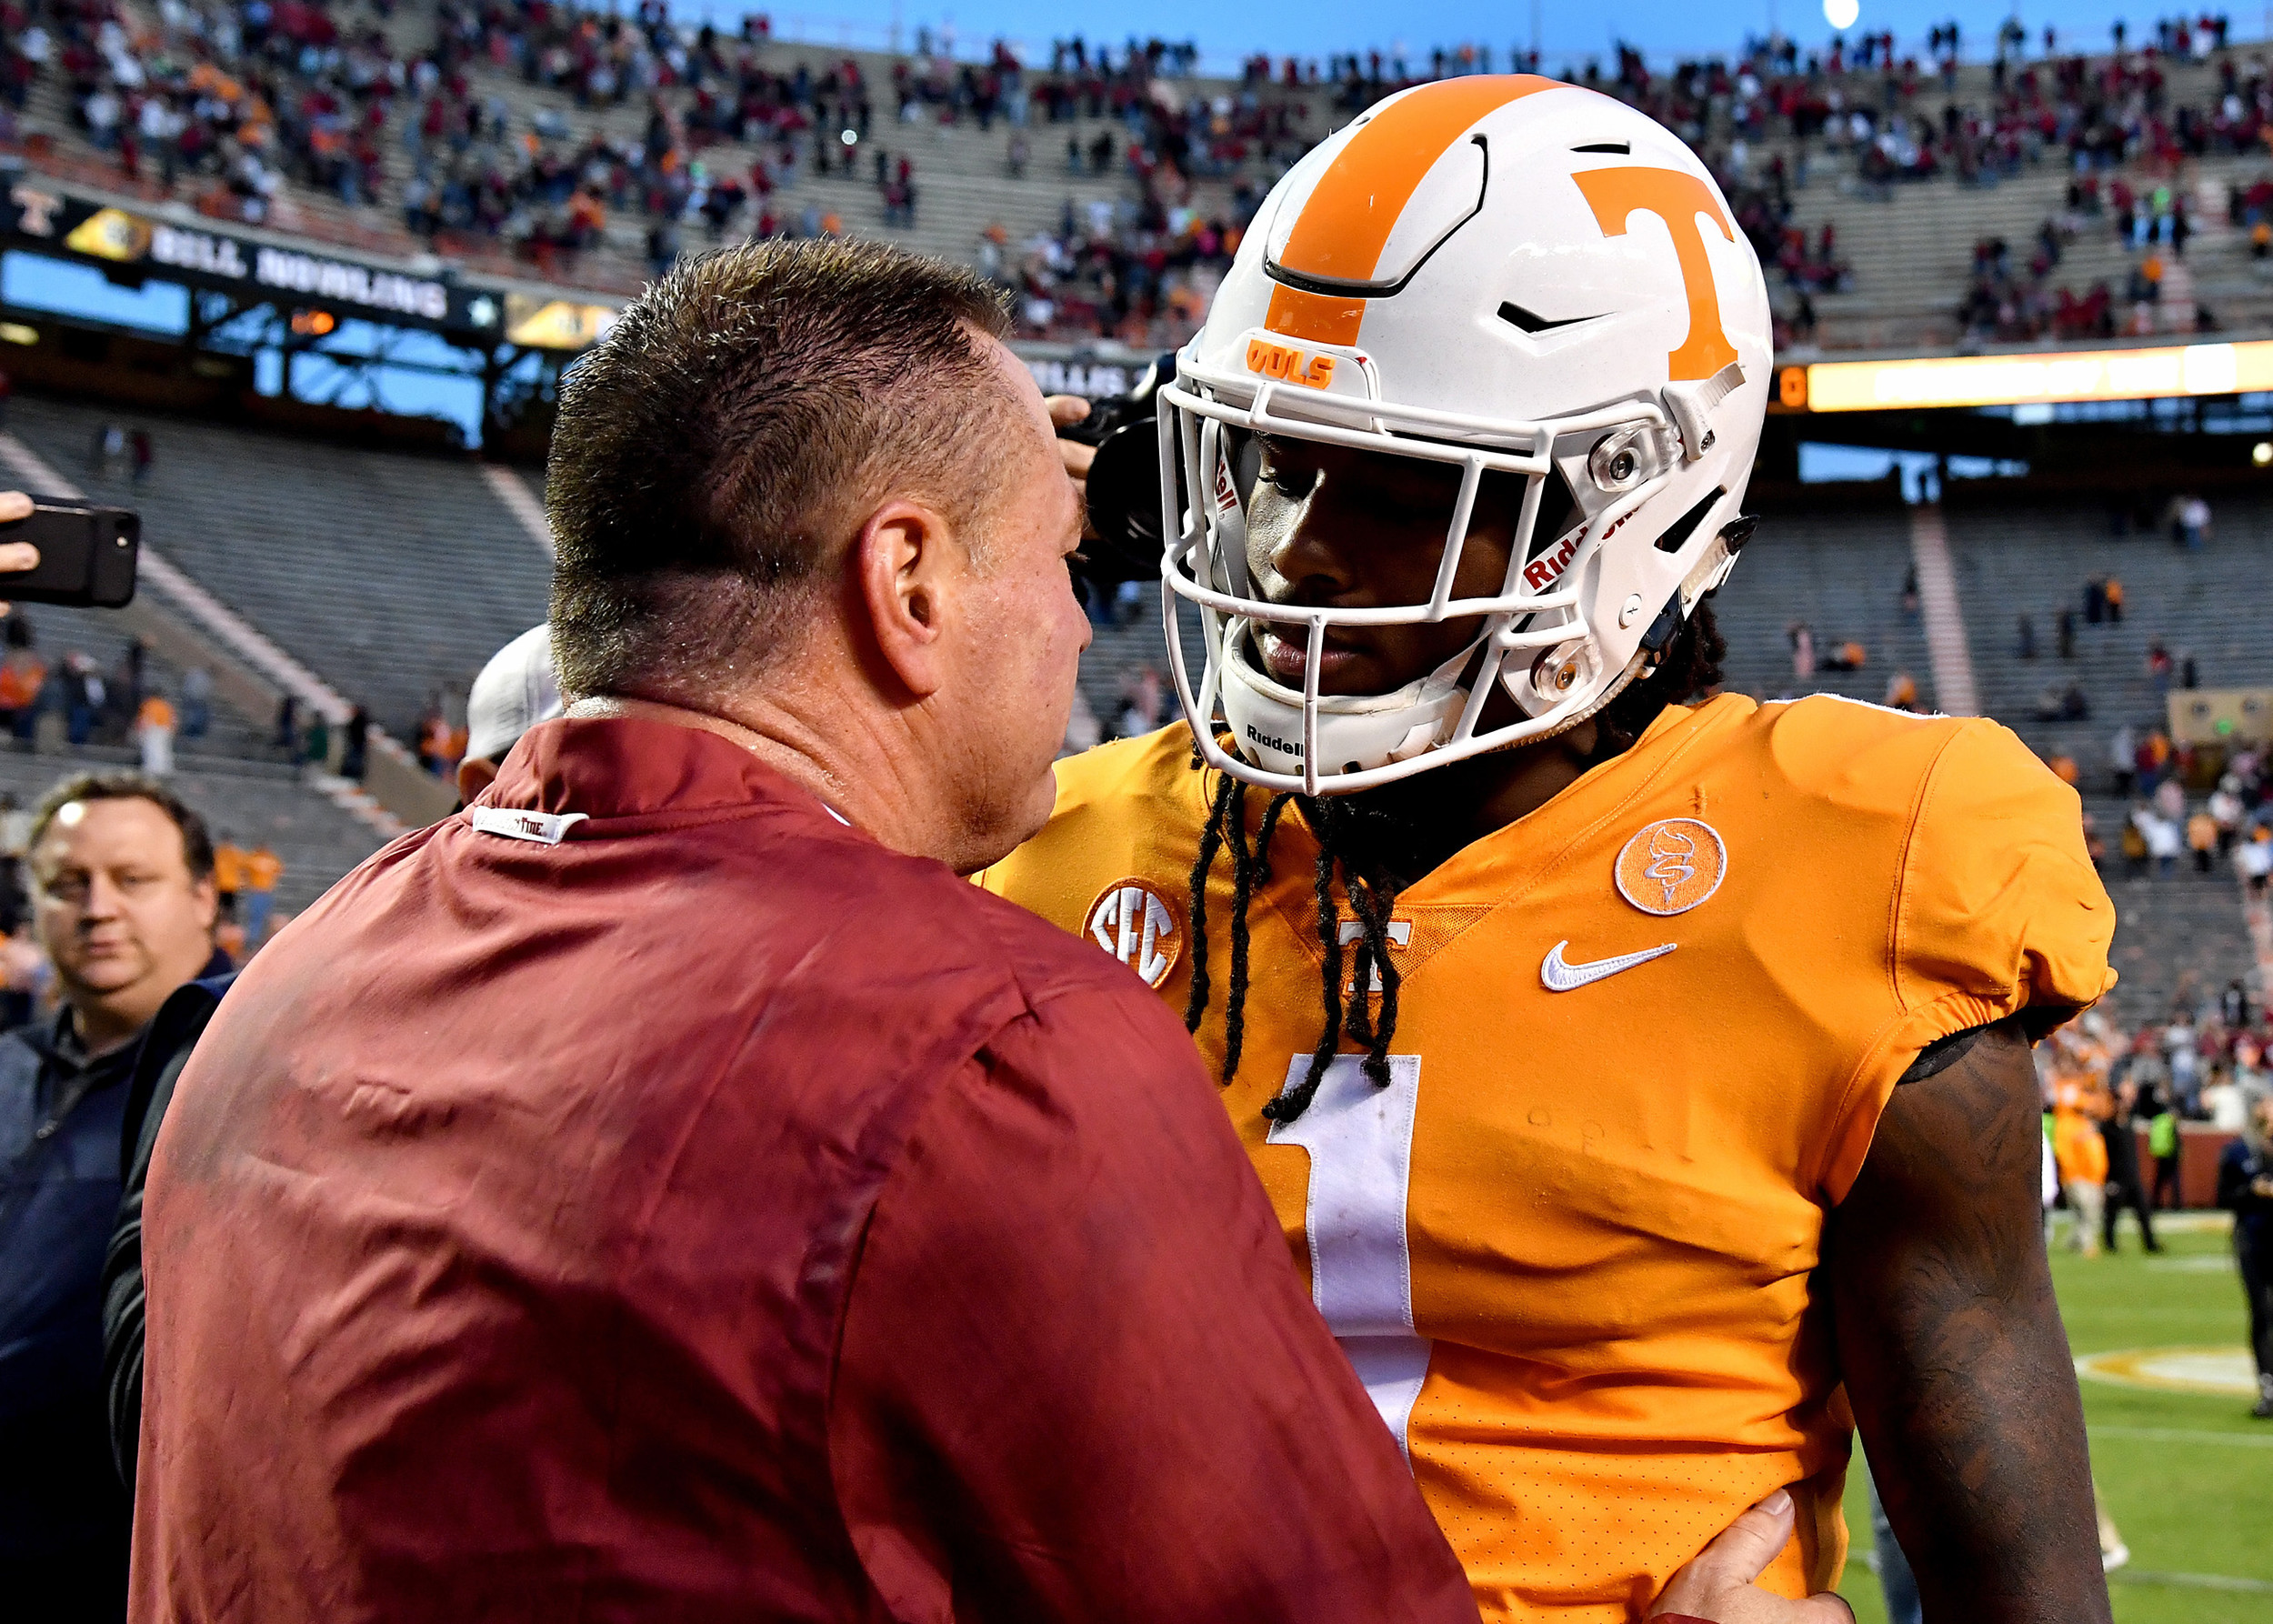 Tennessee Volunteers wide receiver Marquez Callaway (1) talks with his former coach, Butch Jones, following the Alabama at Tennessee NCAA football game on Saturday, Oct. 20, 2018, at Neyland Stadium in Knoxville. Tenn. Alabama wins 58-21. (Photo by Lee Walls)